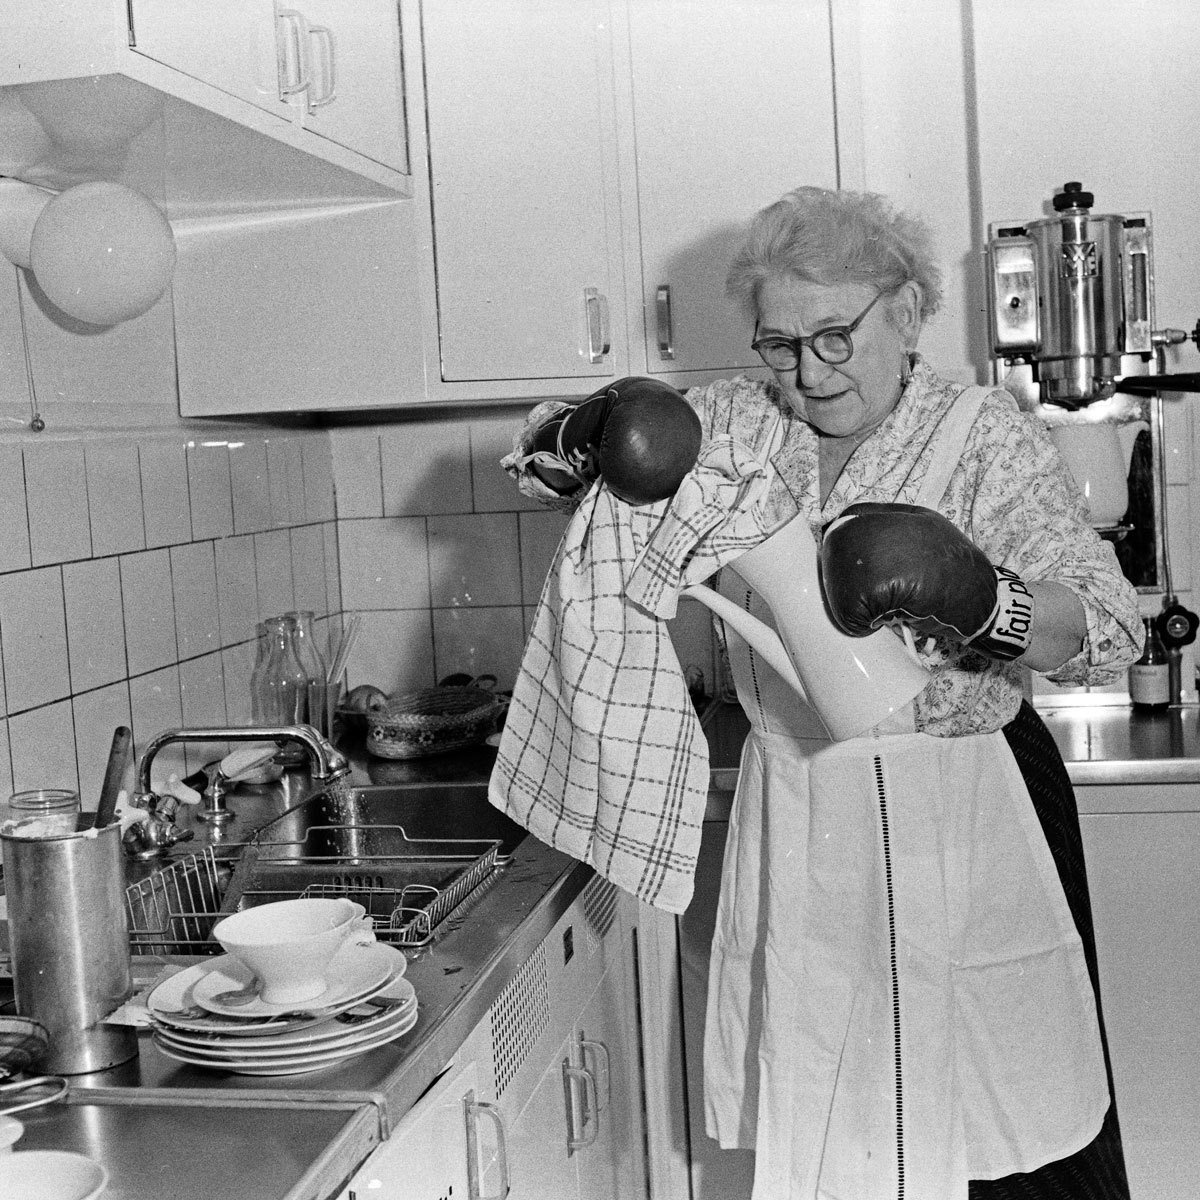 The housekeeper of German comedian Peter Frankenfeld doing the dishes with boxing gloves, 1950s, Siegfried Pilz, United Archives, In Copyright